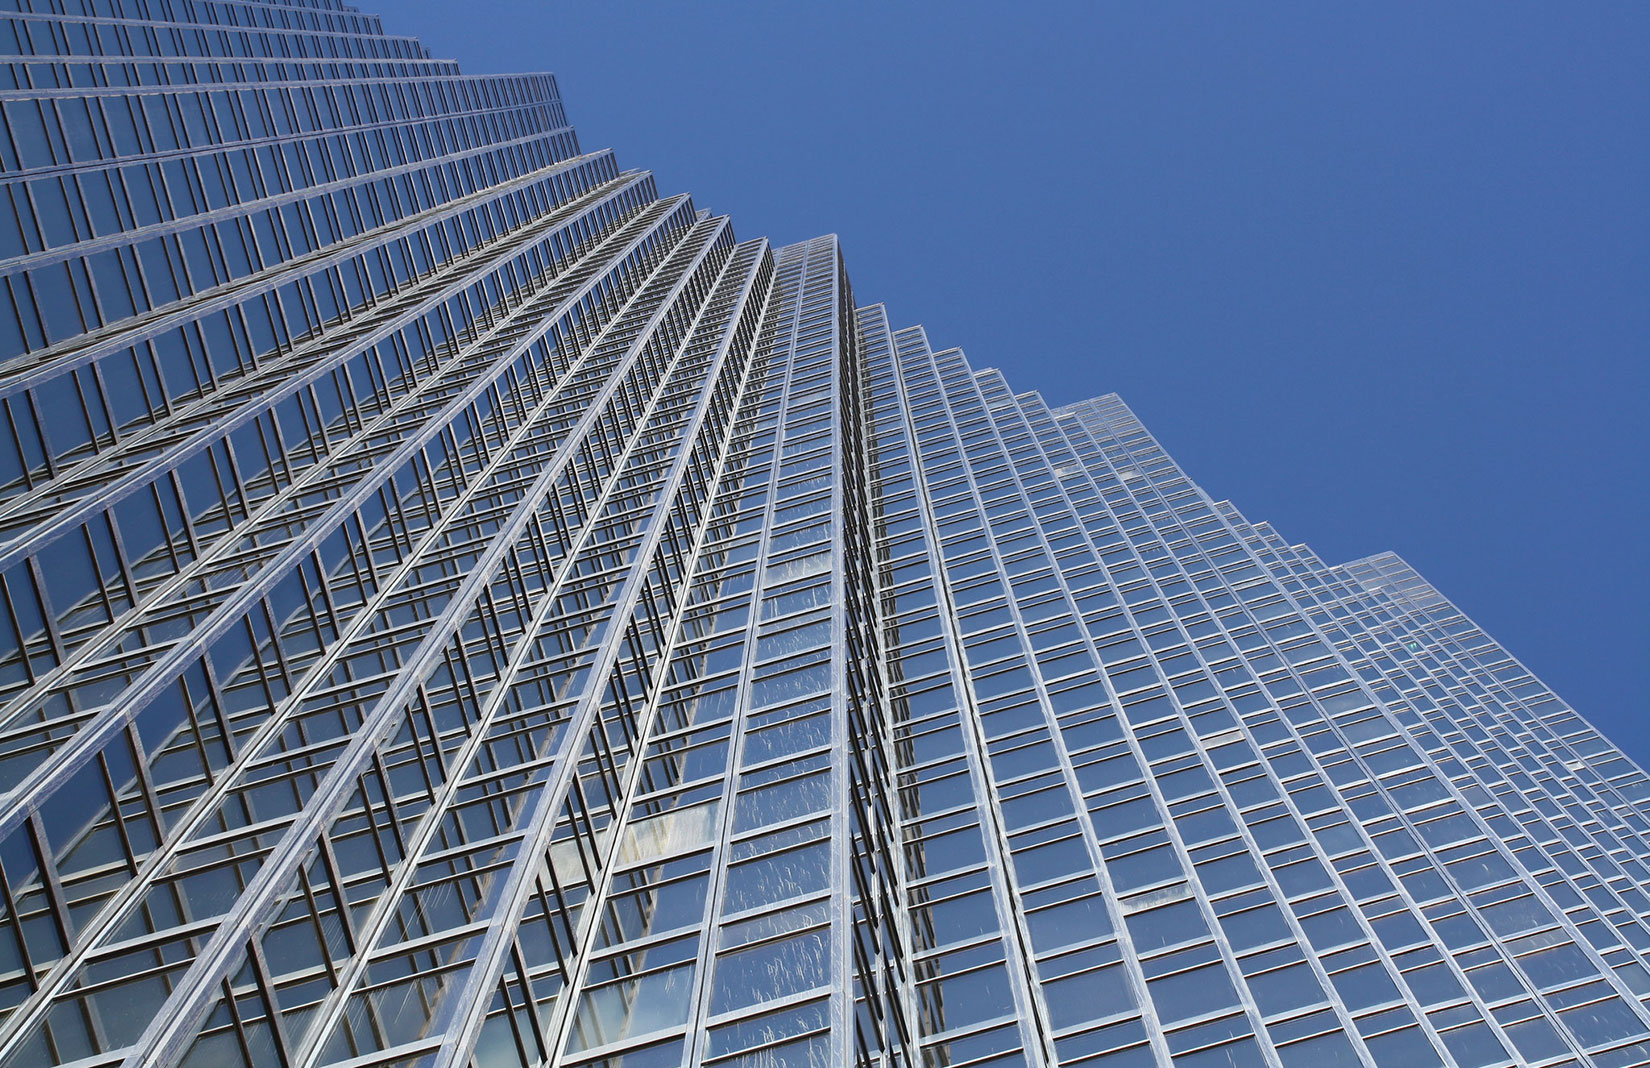 The RBC Plaza's sawtooth facade glistens thanks to flecks of gold in its glass windows